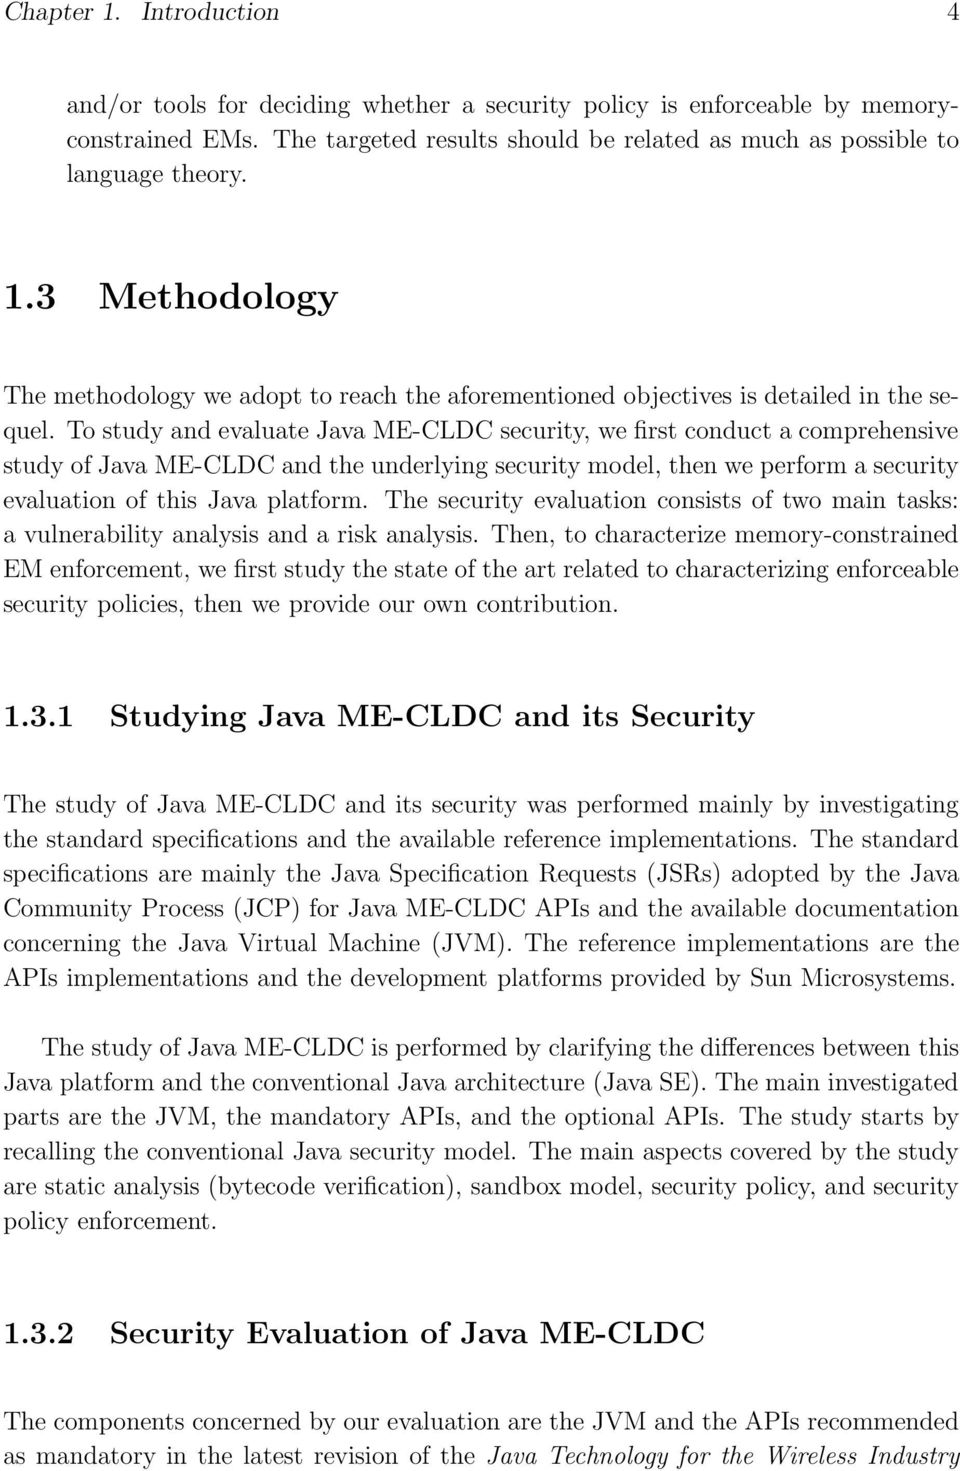 The security evaluation consists of two main tasks: a vulnerability analysis and a risk analysis.